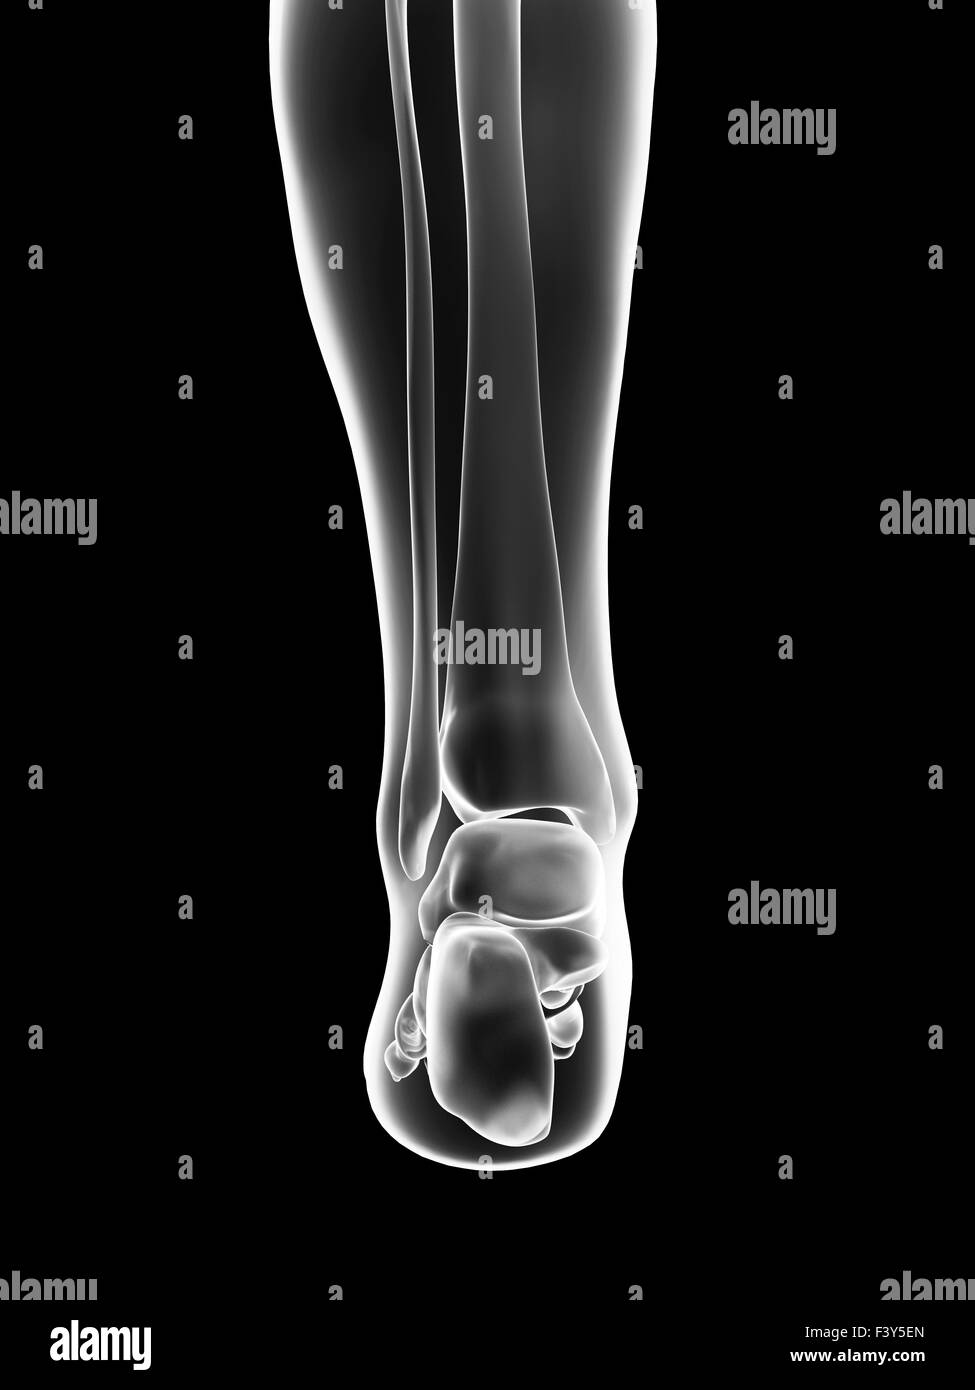 Ankle Bones Healthy Stock Photos Ankle Bones Healthy Stock Images